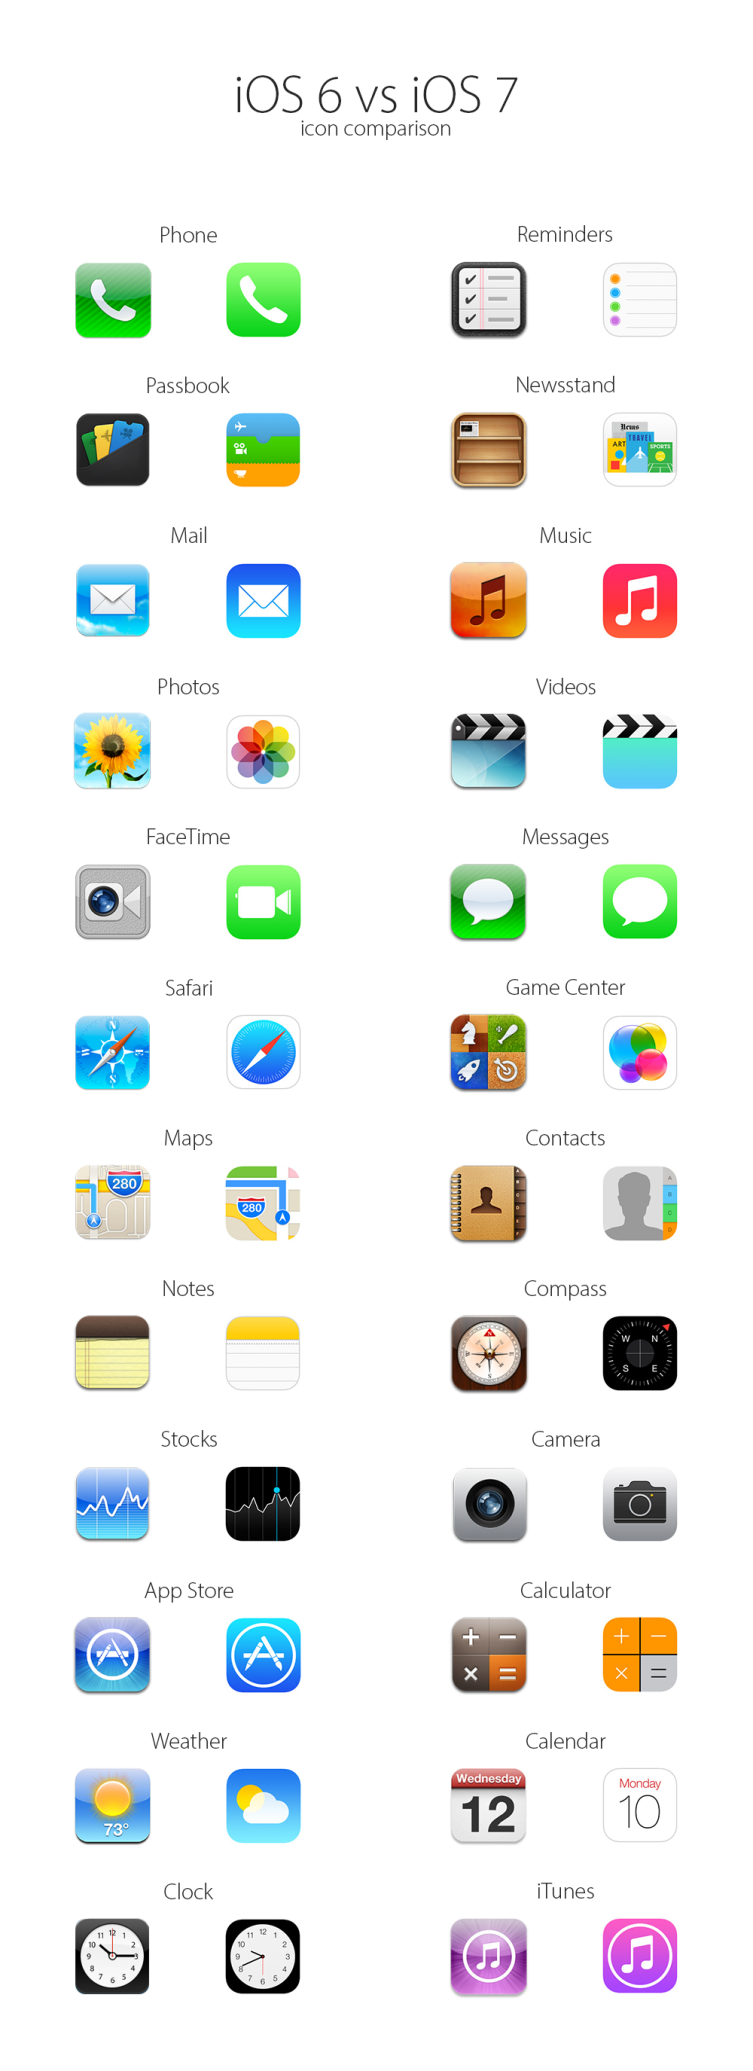 ios6vsios7_icons.png